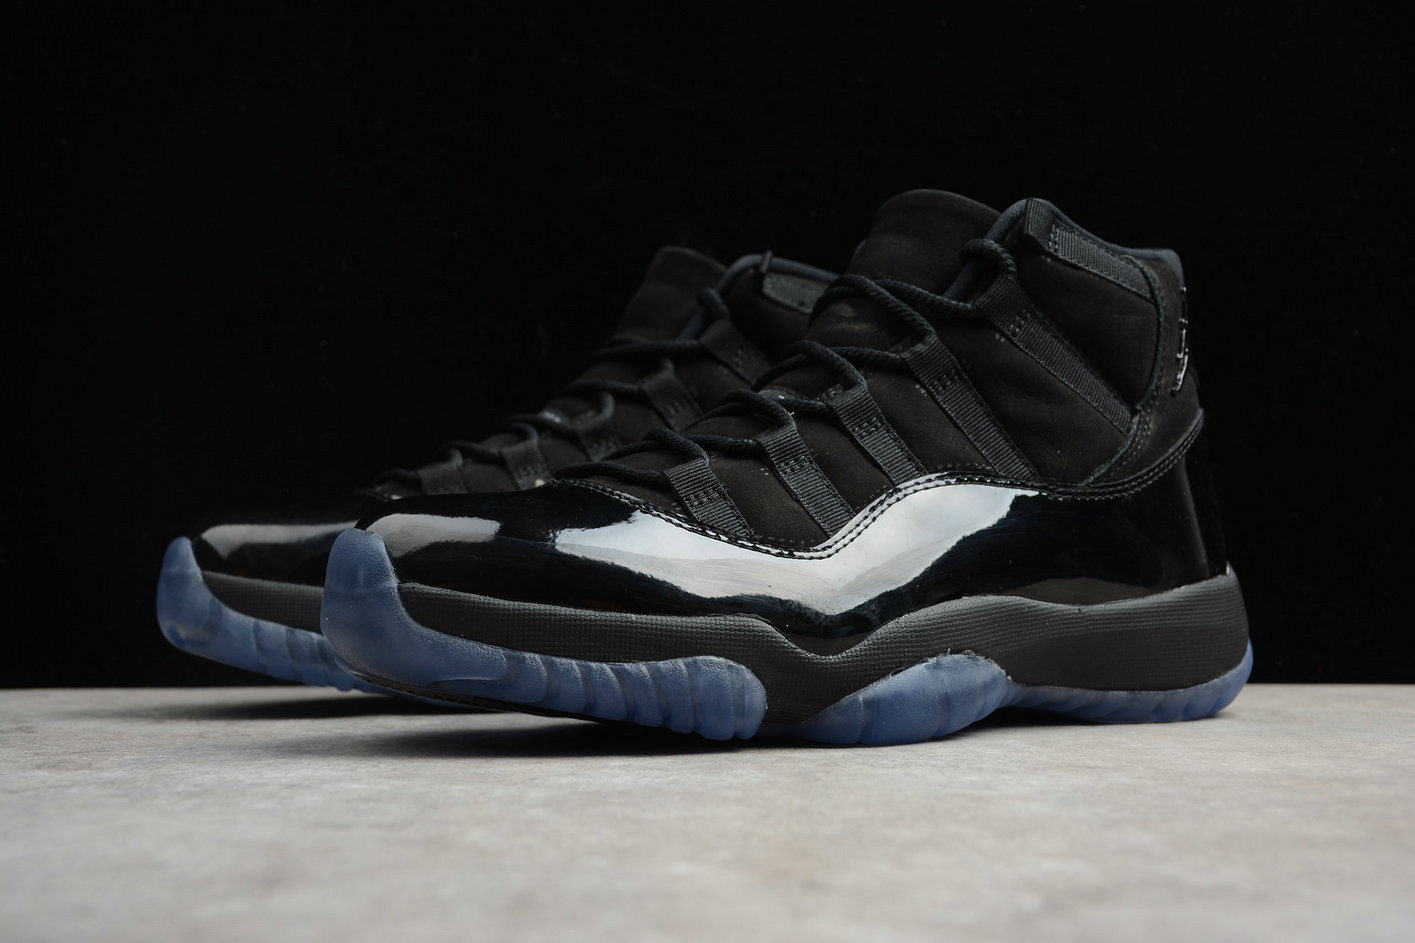 Wholesale Cheap Nike Air Jordan 11 Rero High OG 378037-005 Black Royal Blue